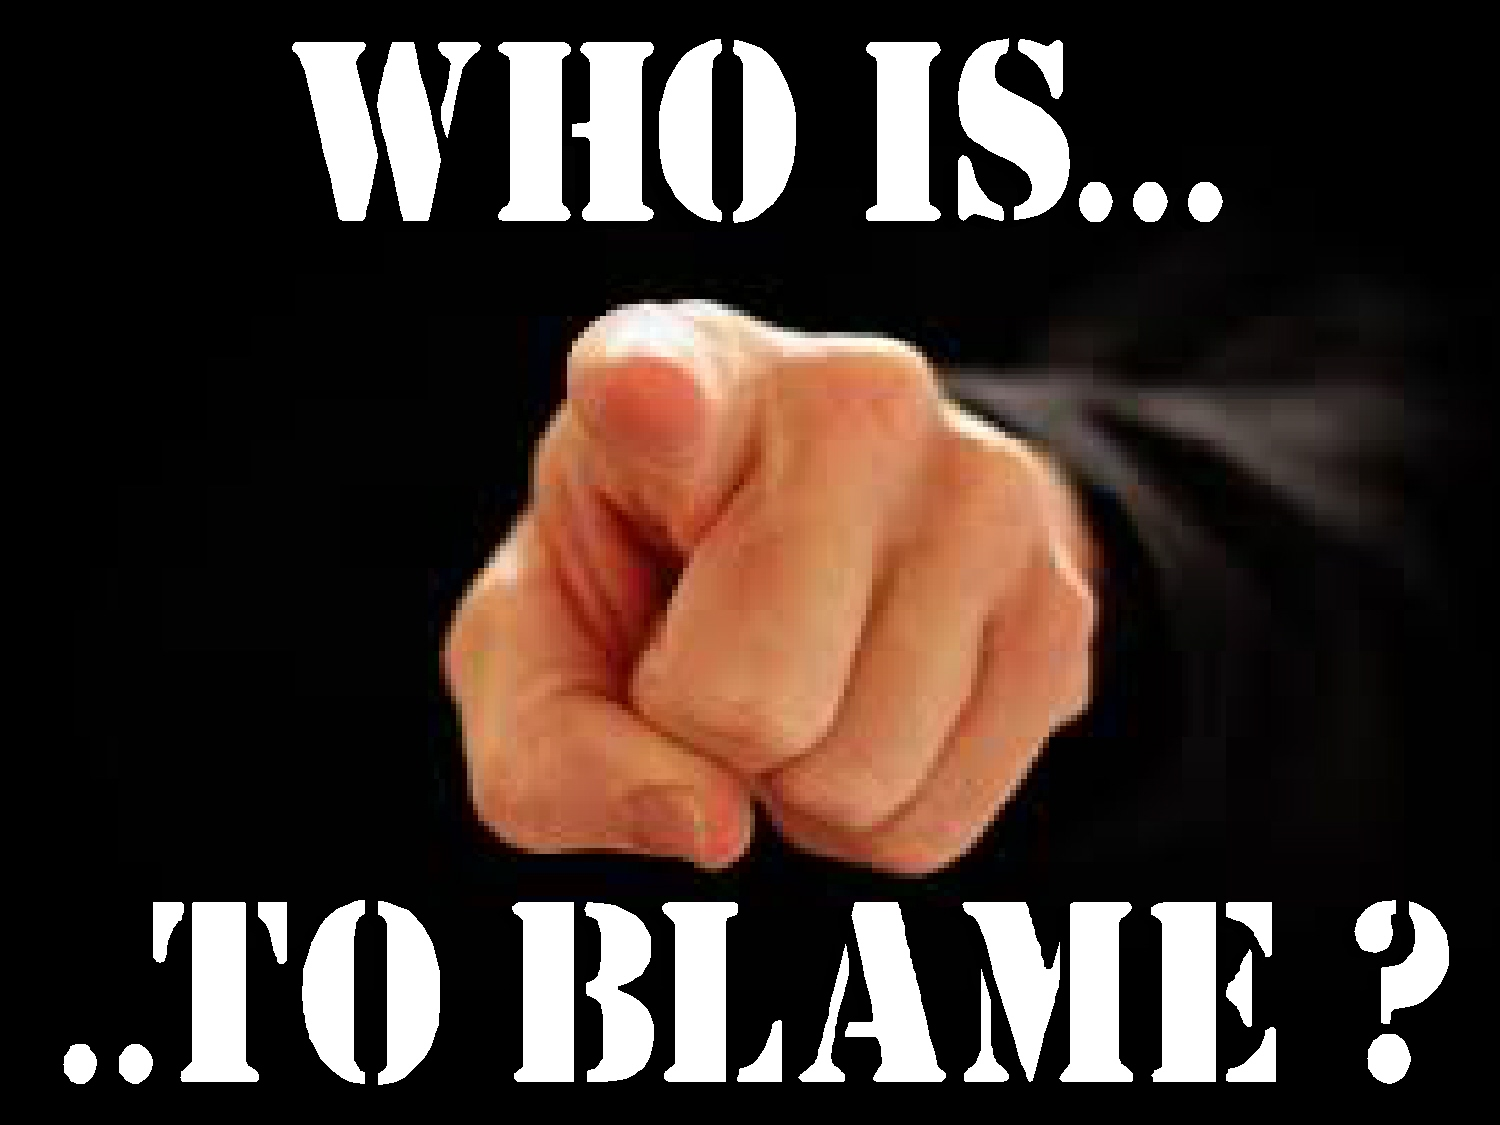 who or what was to blame Define were to blame were to blame synonyms, were to blame pronunciation, were to blame translation, english dictionary definition of were to blame trv blamed , blam ng , blames 1 to consider responsible for a misdeed, failure, or undesirable outcome: blamed the coach for the loss blamed alcohol.